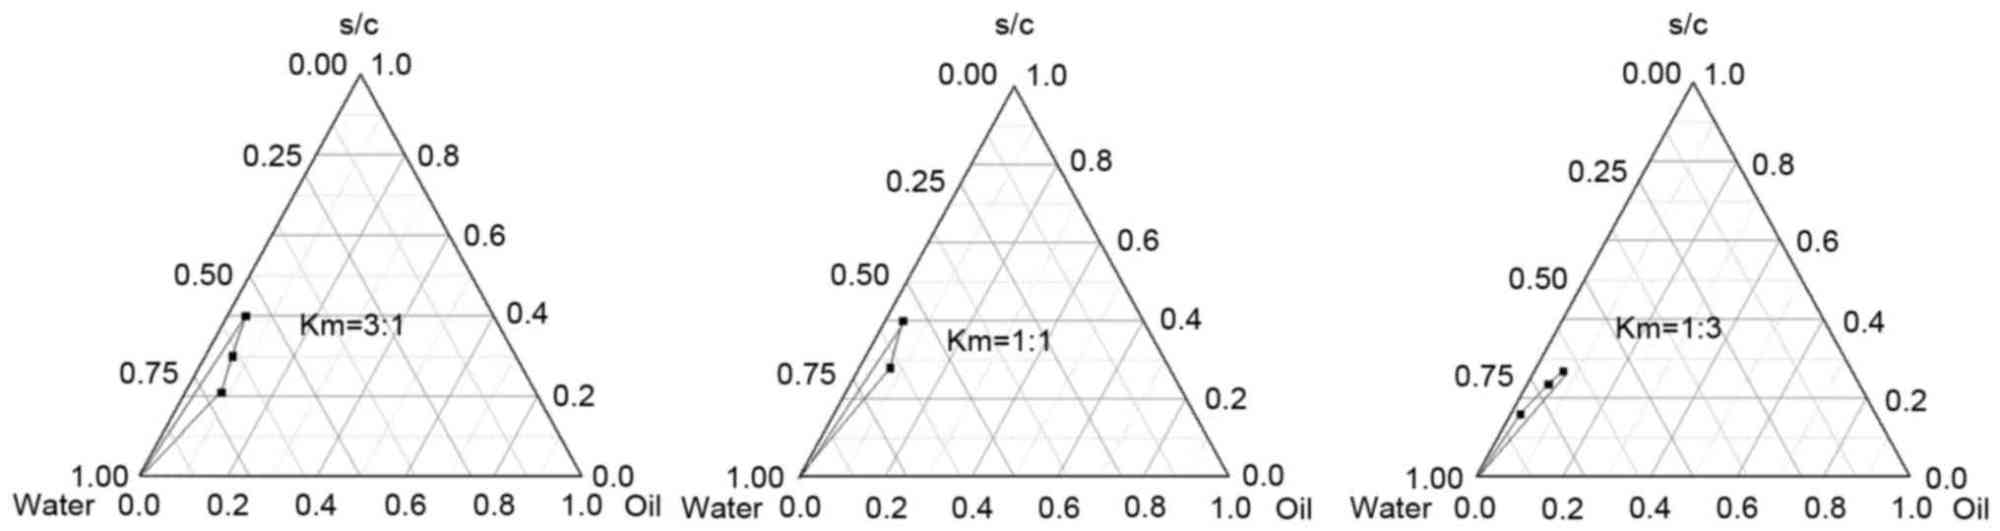 hight resolution of pseudoternary phase diagrams of microemulsions formulated using different ratios of surfactant cremophor el to cosurfactant propylene glycol